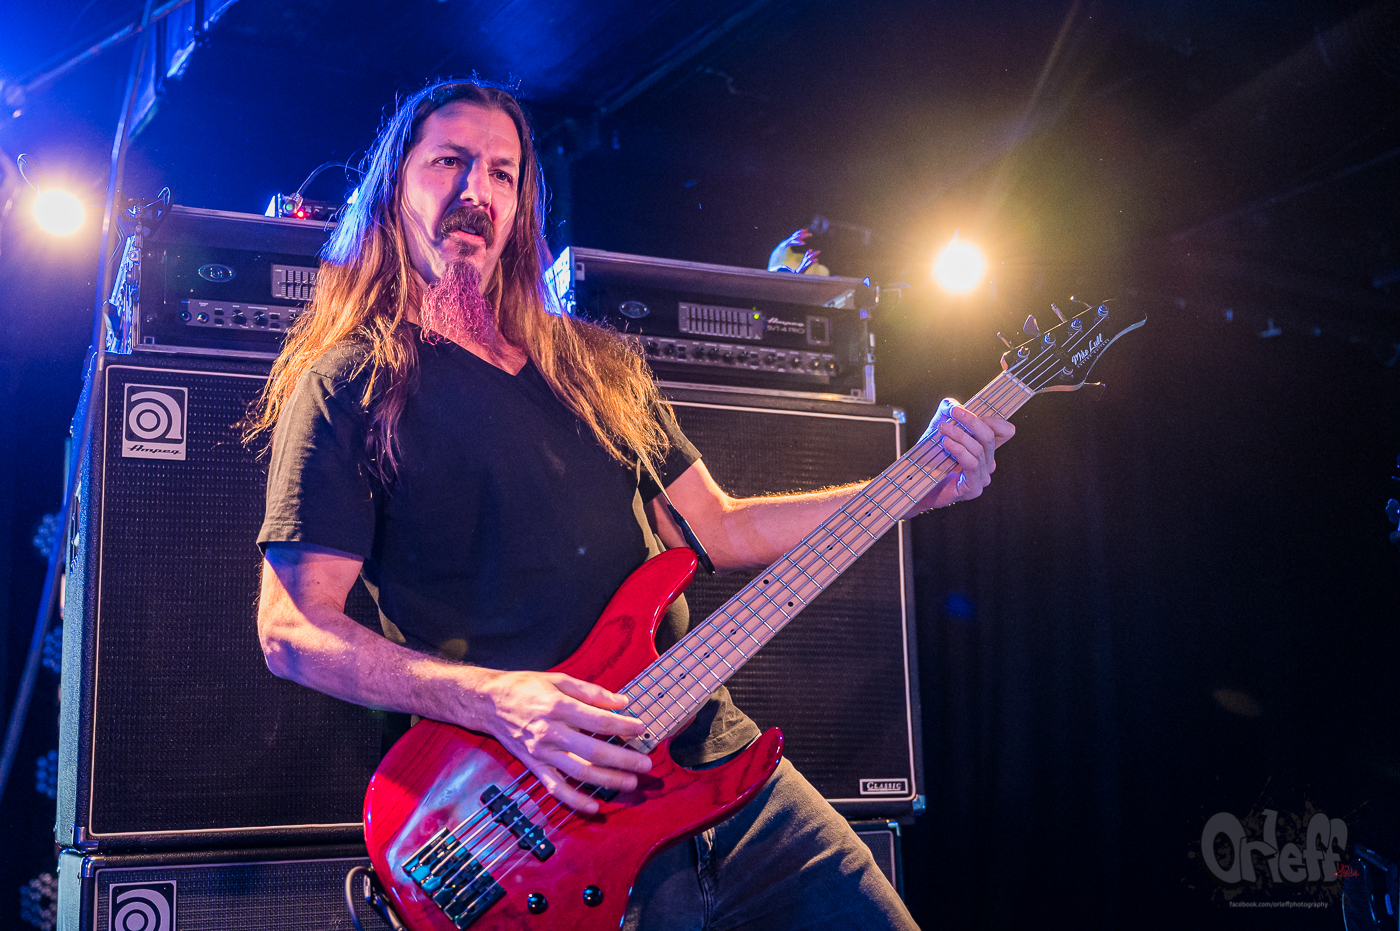 The Aristocrats @ City Stage, 2019